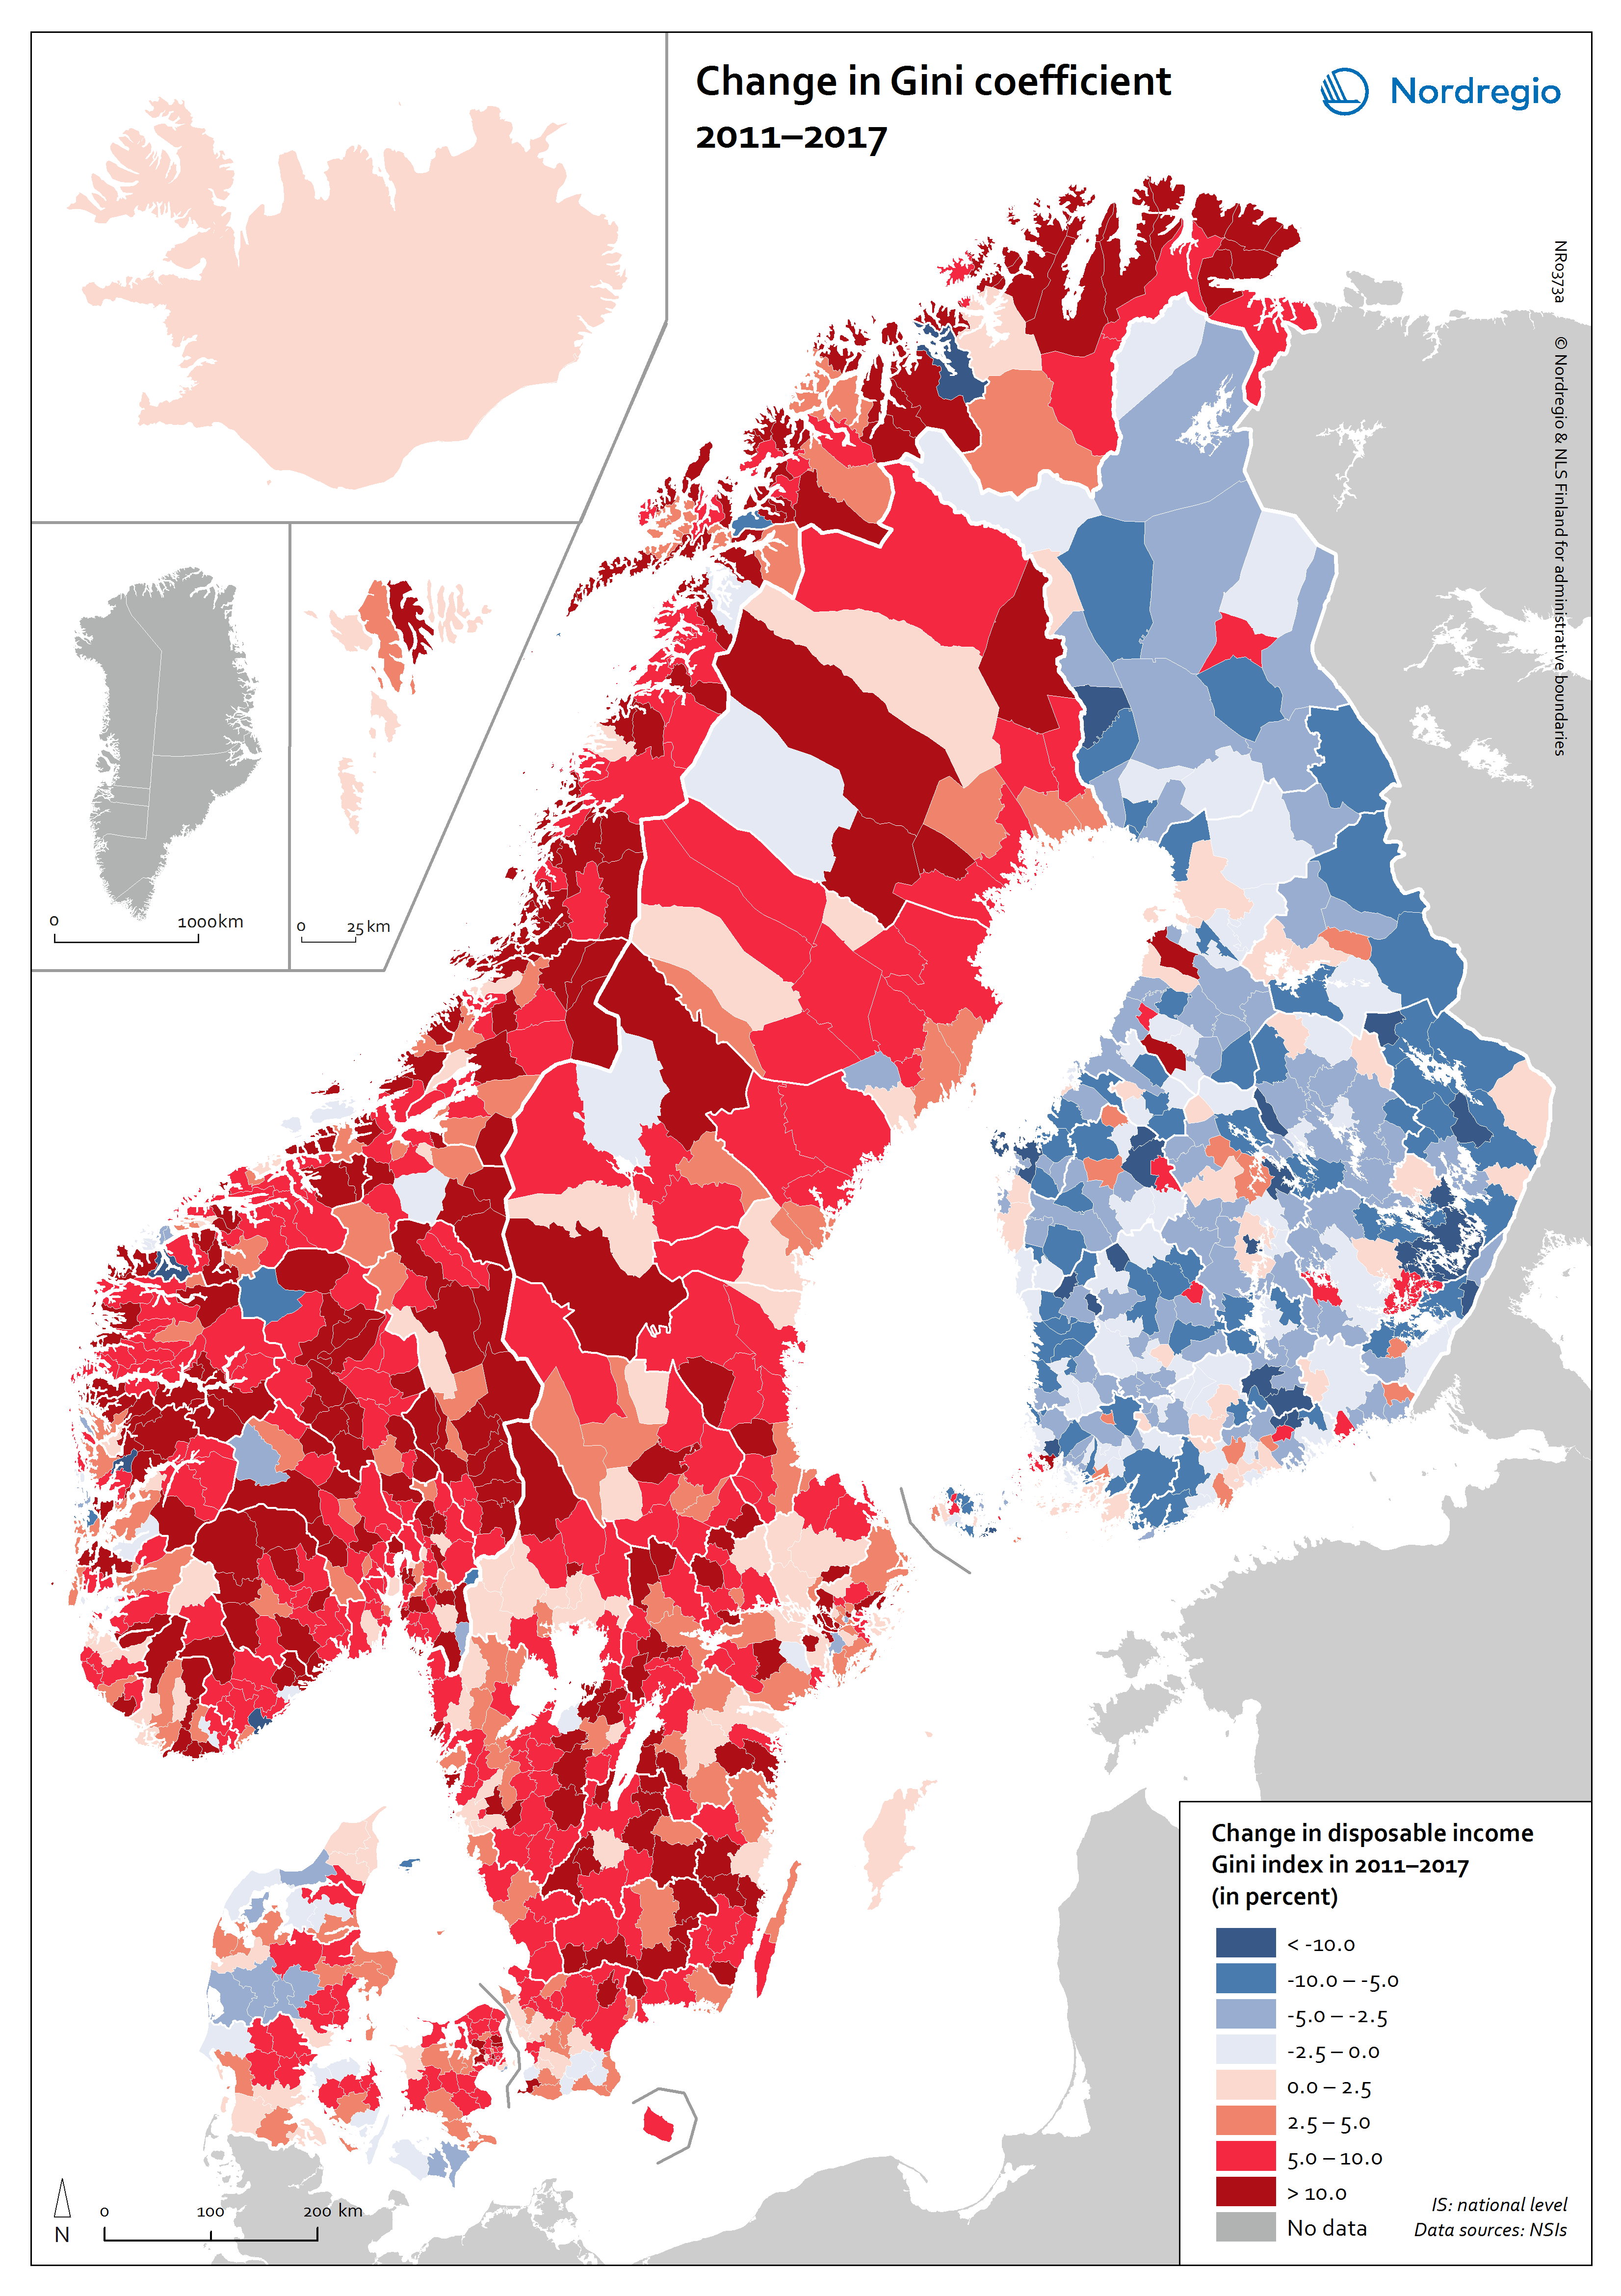 Picture of: Change In Gini Coefficient 2011 2017 Nordregio